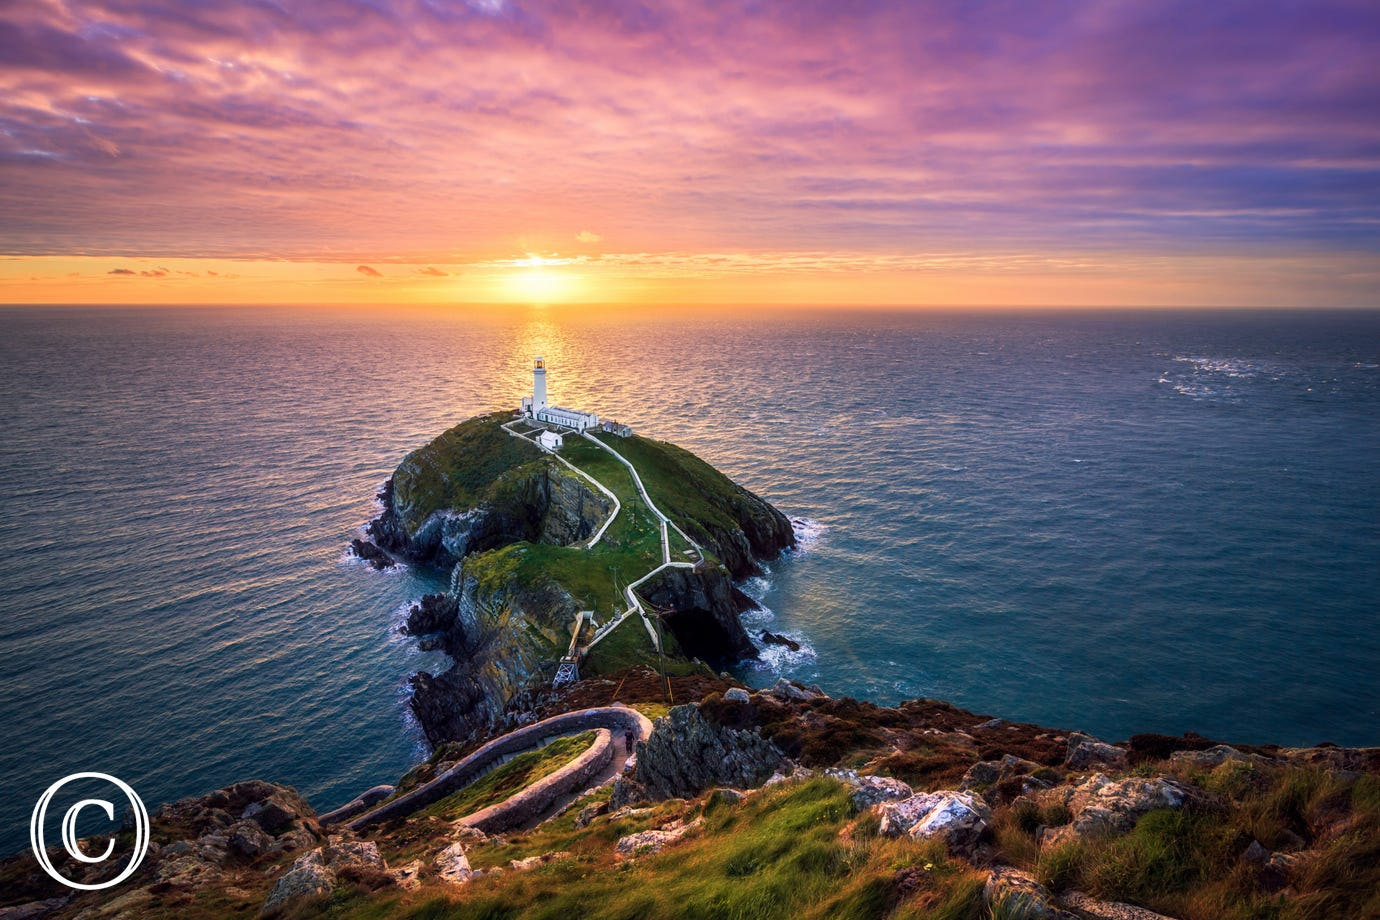 Sunset at South Stack near Holyhead, Anglesey